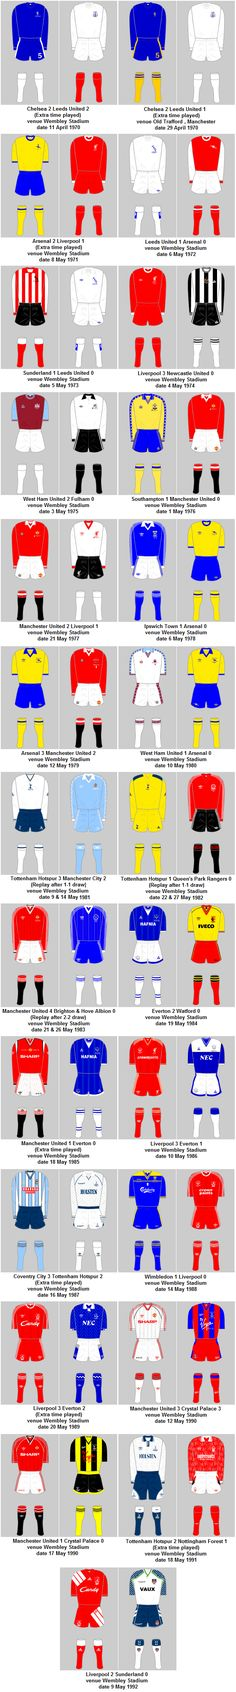 FA Cup Final Playing Kits 1969-70 to 1991-92 | My Football Facts World Cup Winners, Fa Cup Final, England Football, Football Kits, Fifa World Cup, Finals, Facts, Play, Soccer Kits